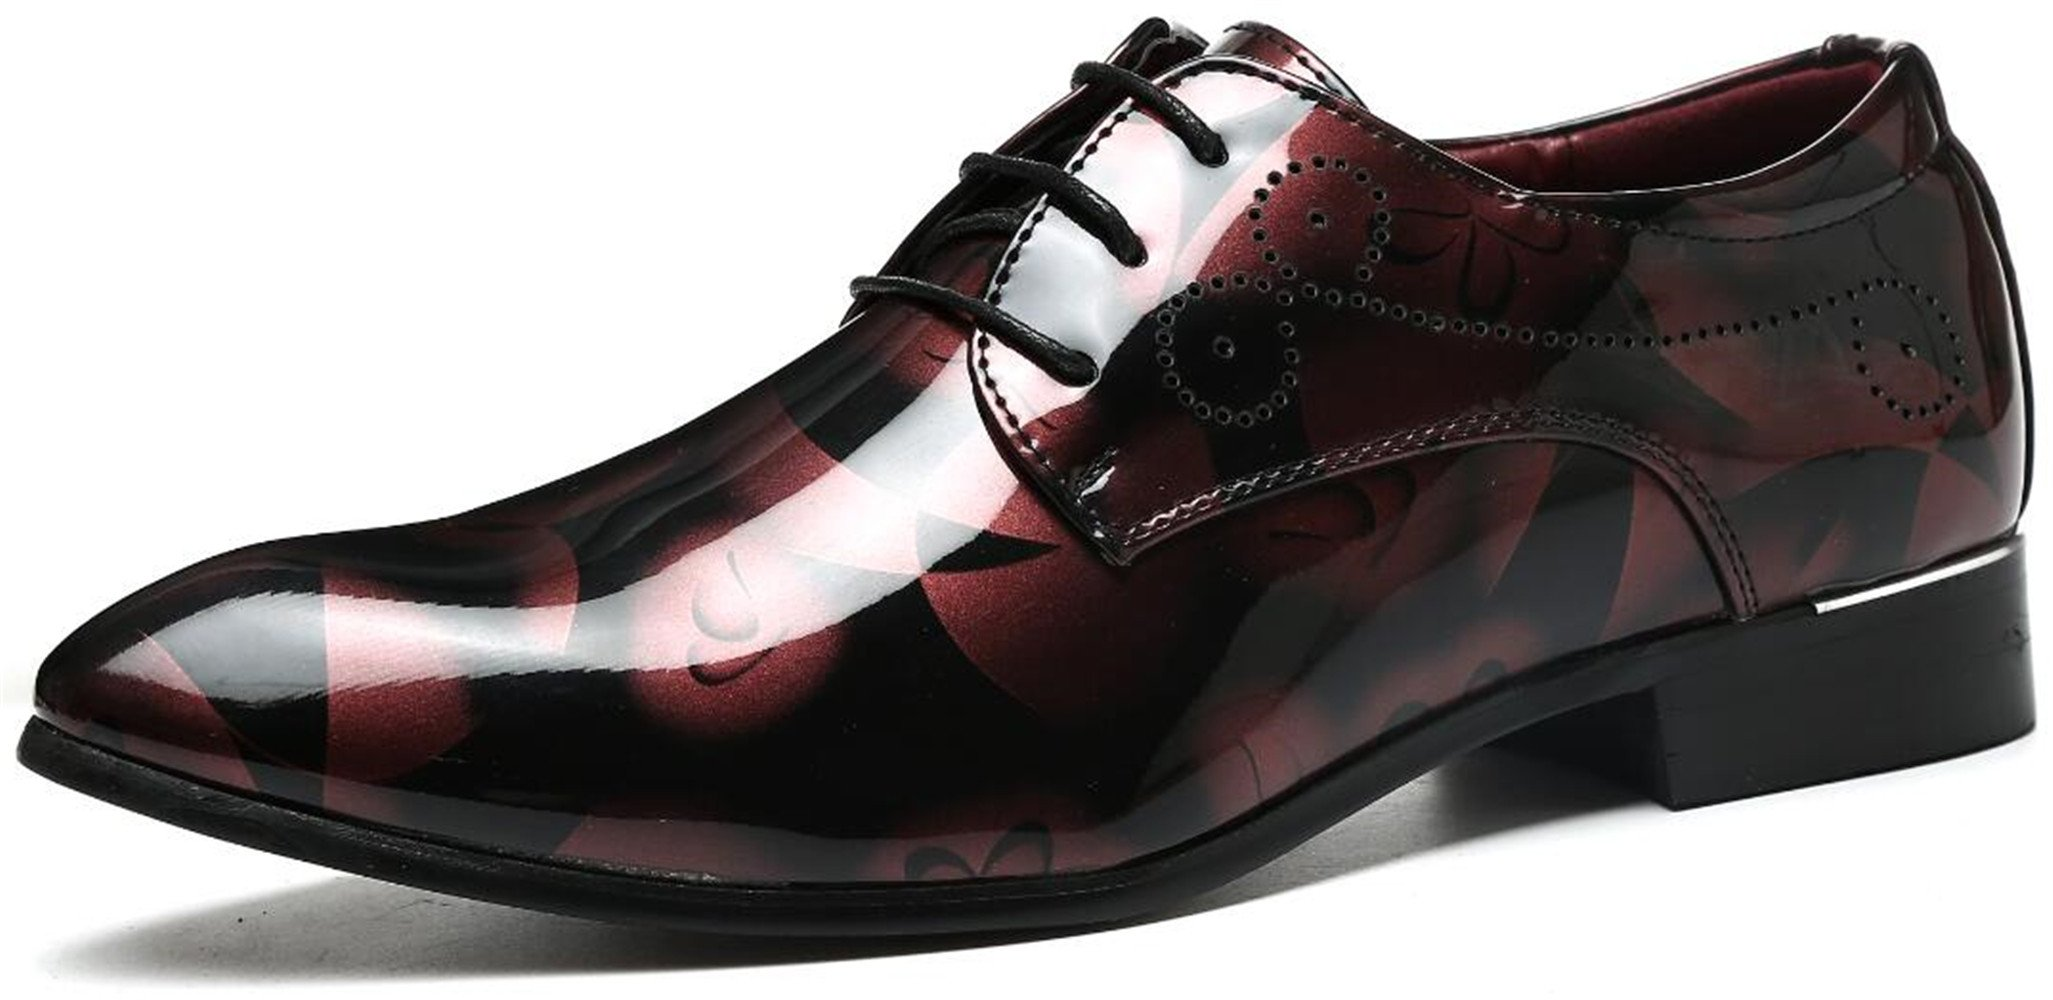 Men's Fashion Shiny Patent-Leather Shoes Tuxedo Wingtip Oxford Shoes (6.5, Red)